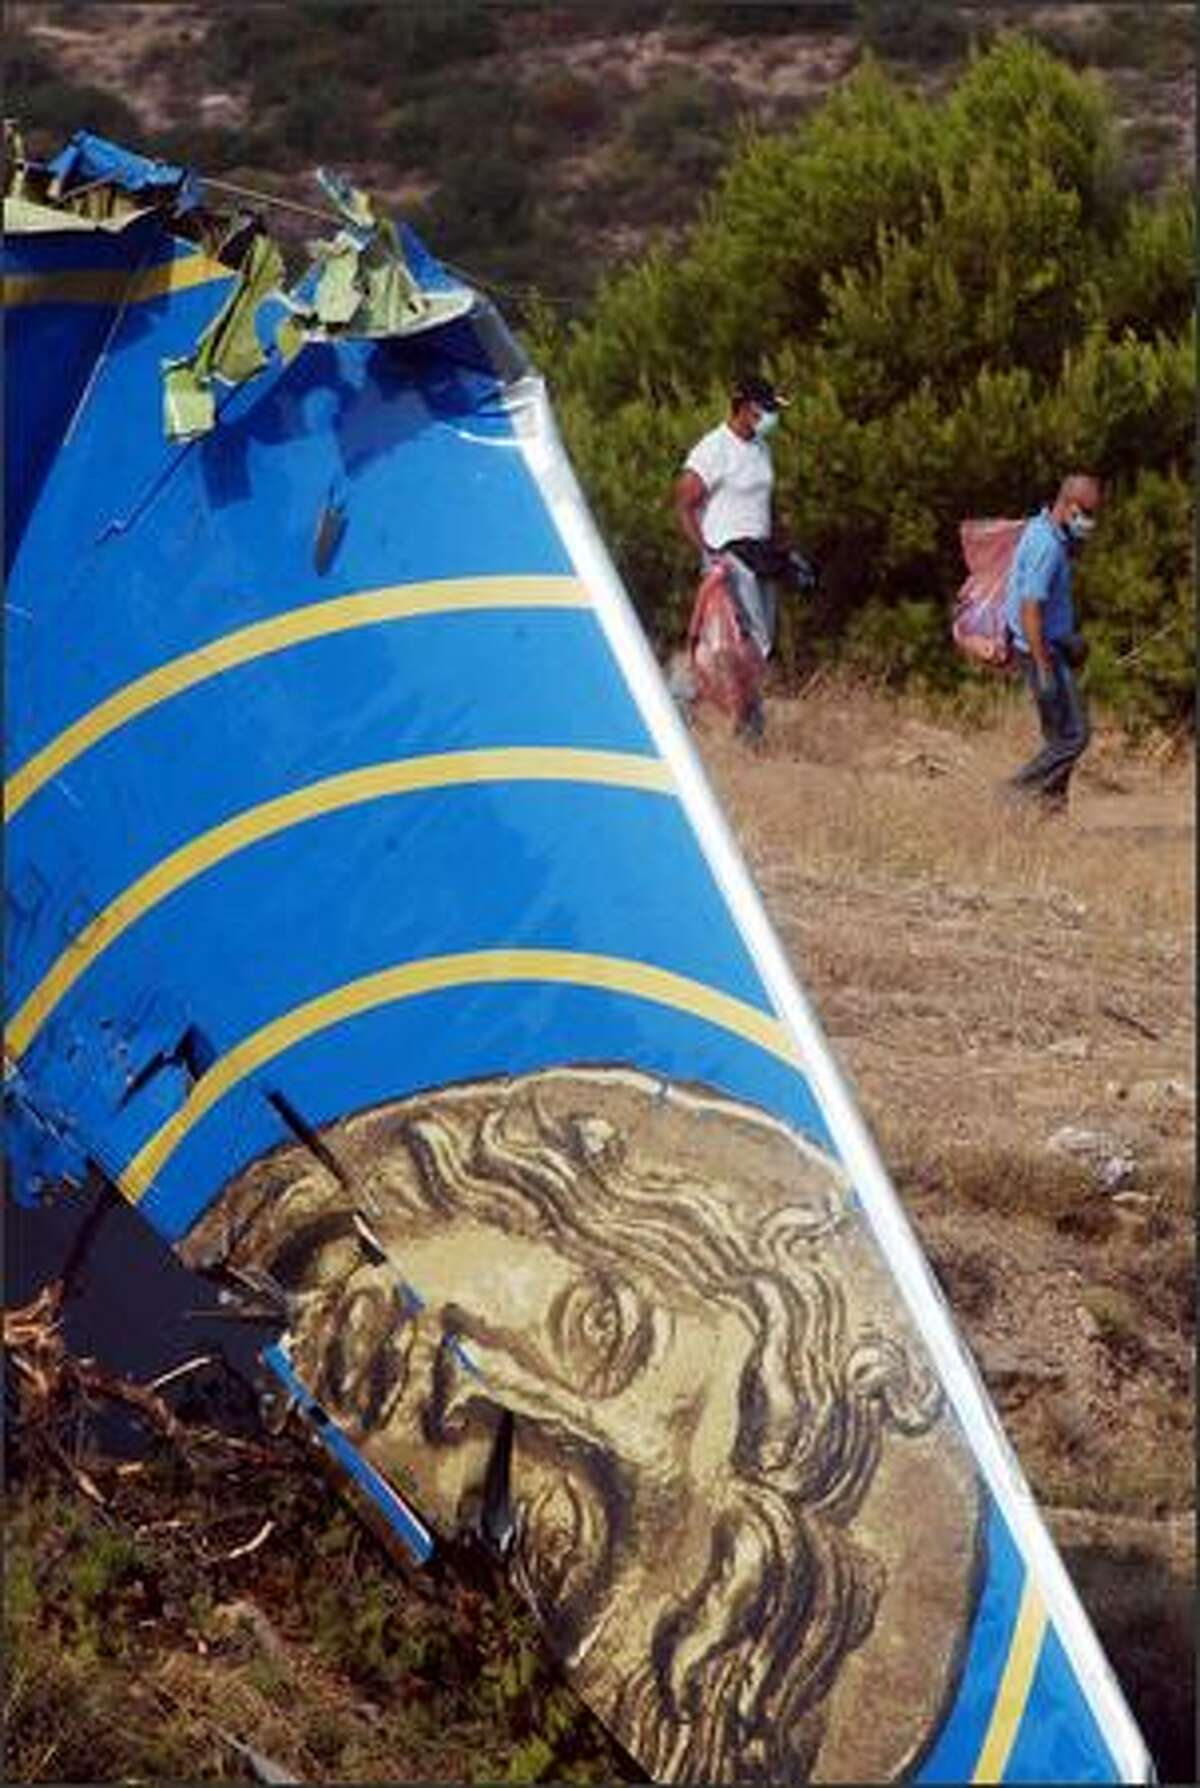 The tail of a Cypriot airliner is seen as investigators carry plastic bags at the crash site where the aircraft slammed into a hill, in the coastal town of Grammatiko, Greece on Monday, Aug. 15, 2005. The Helios Airways Boeing 737 crashed 40 kilometers (25 miles) north of Athens after an apaparent loss of cabin pressure, all 121 people on board were killed . (AP Photo/Thanassis Stavrakis)